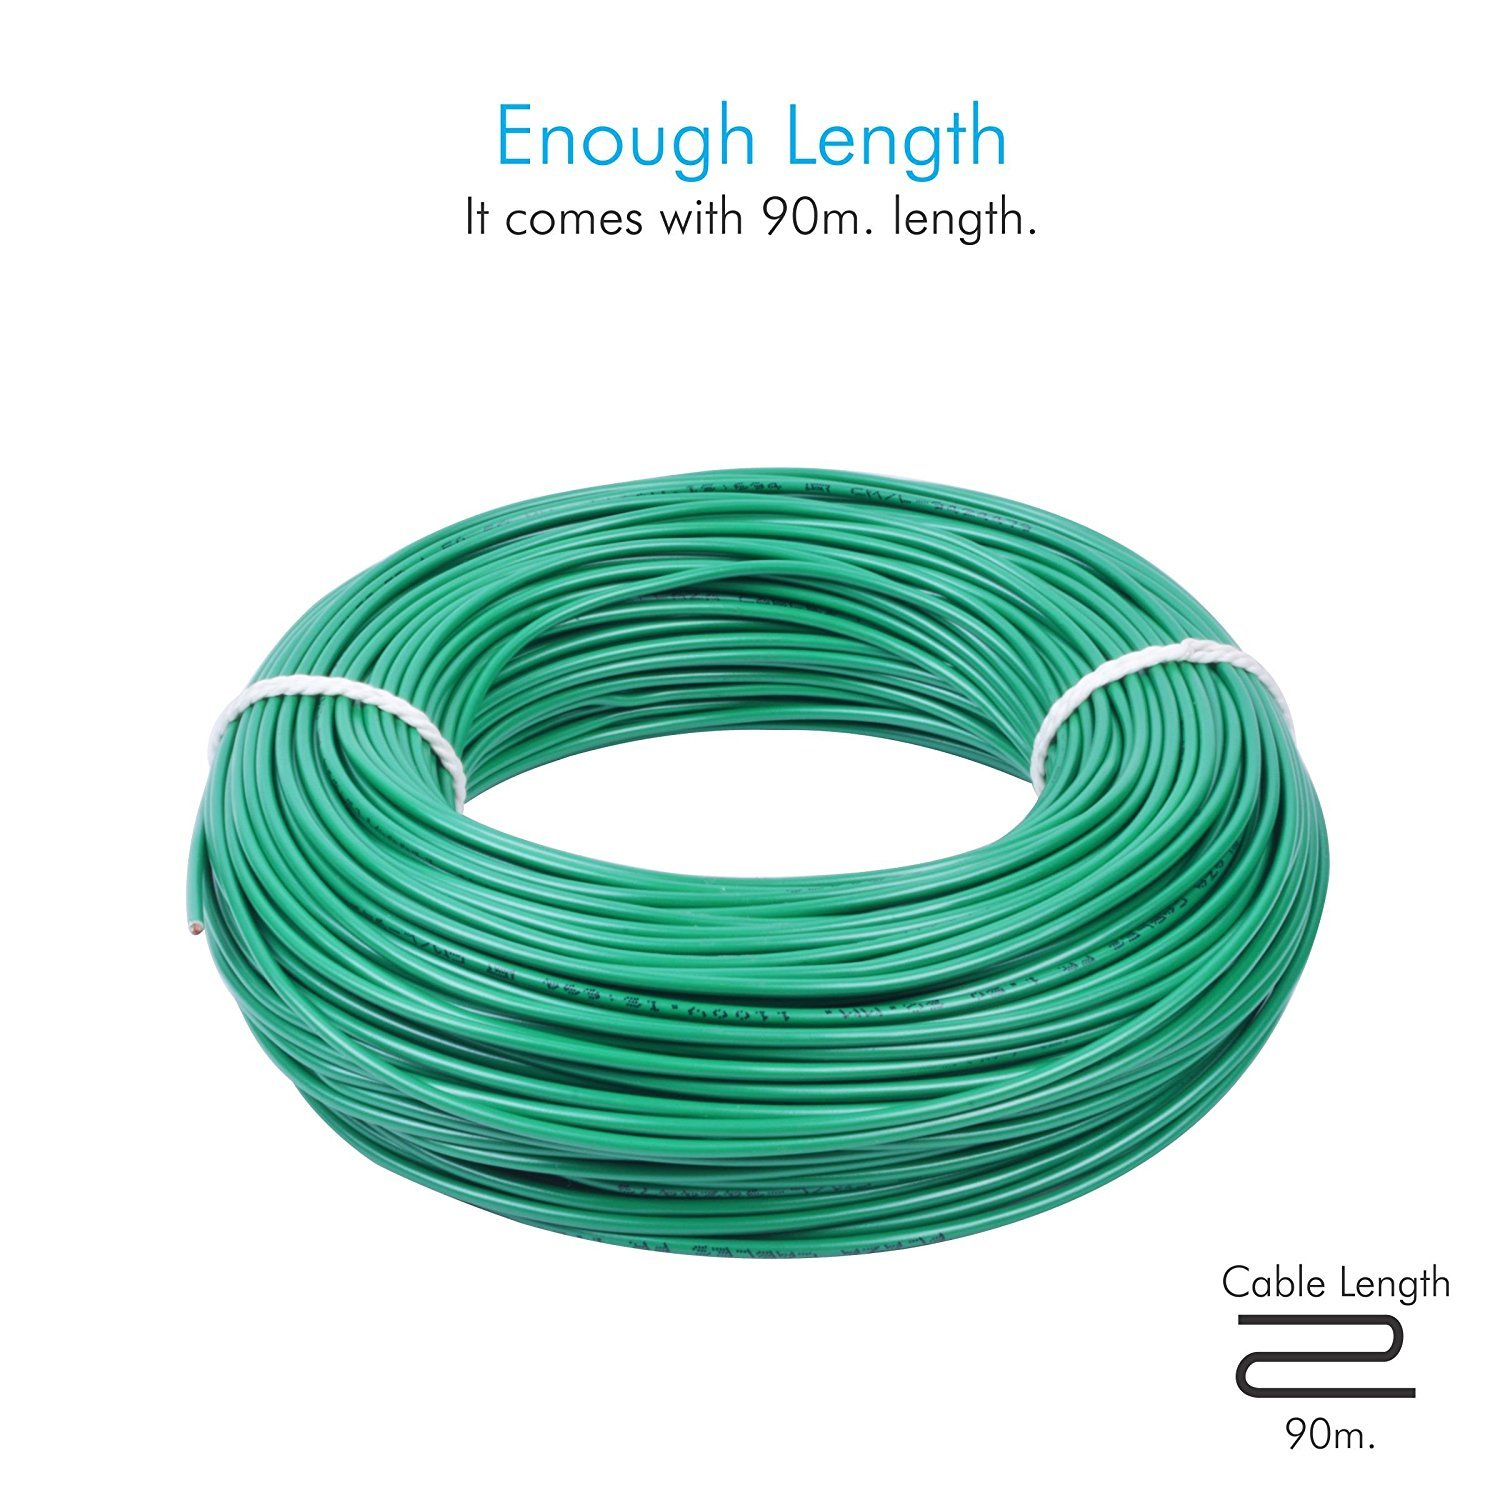 PLAZA PVC Insulated 2.5 Sq. mm Cable (Green, 90m): Amazon.in: Home ...